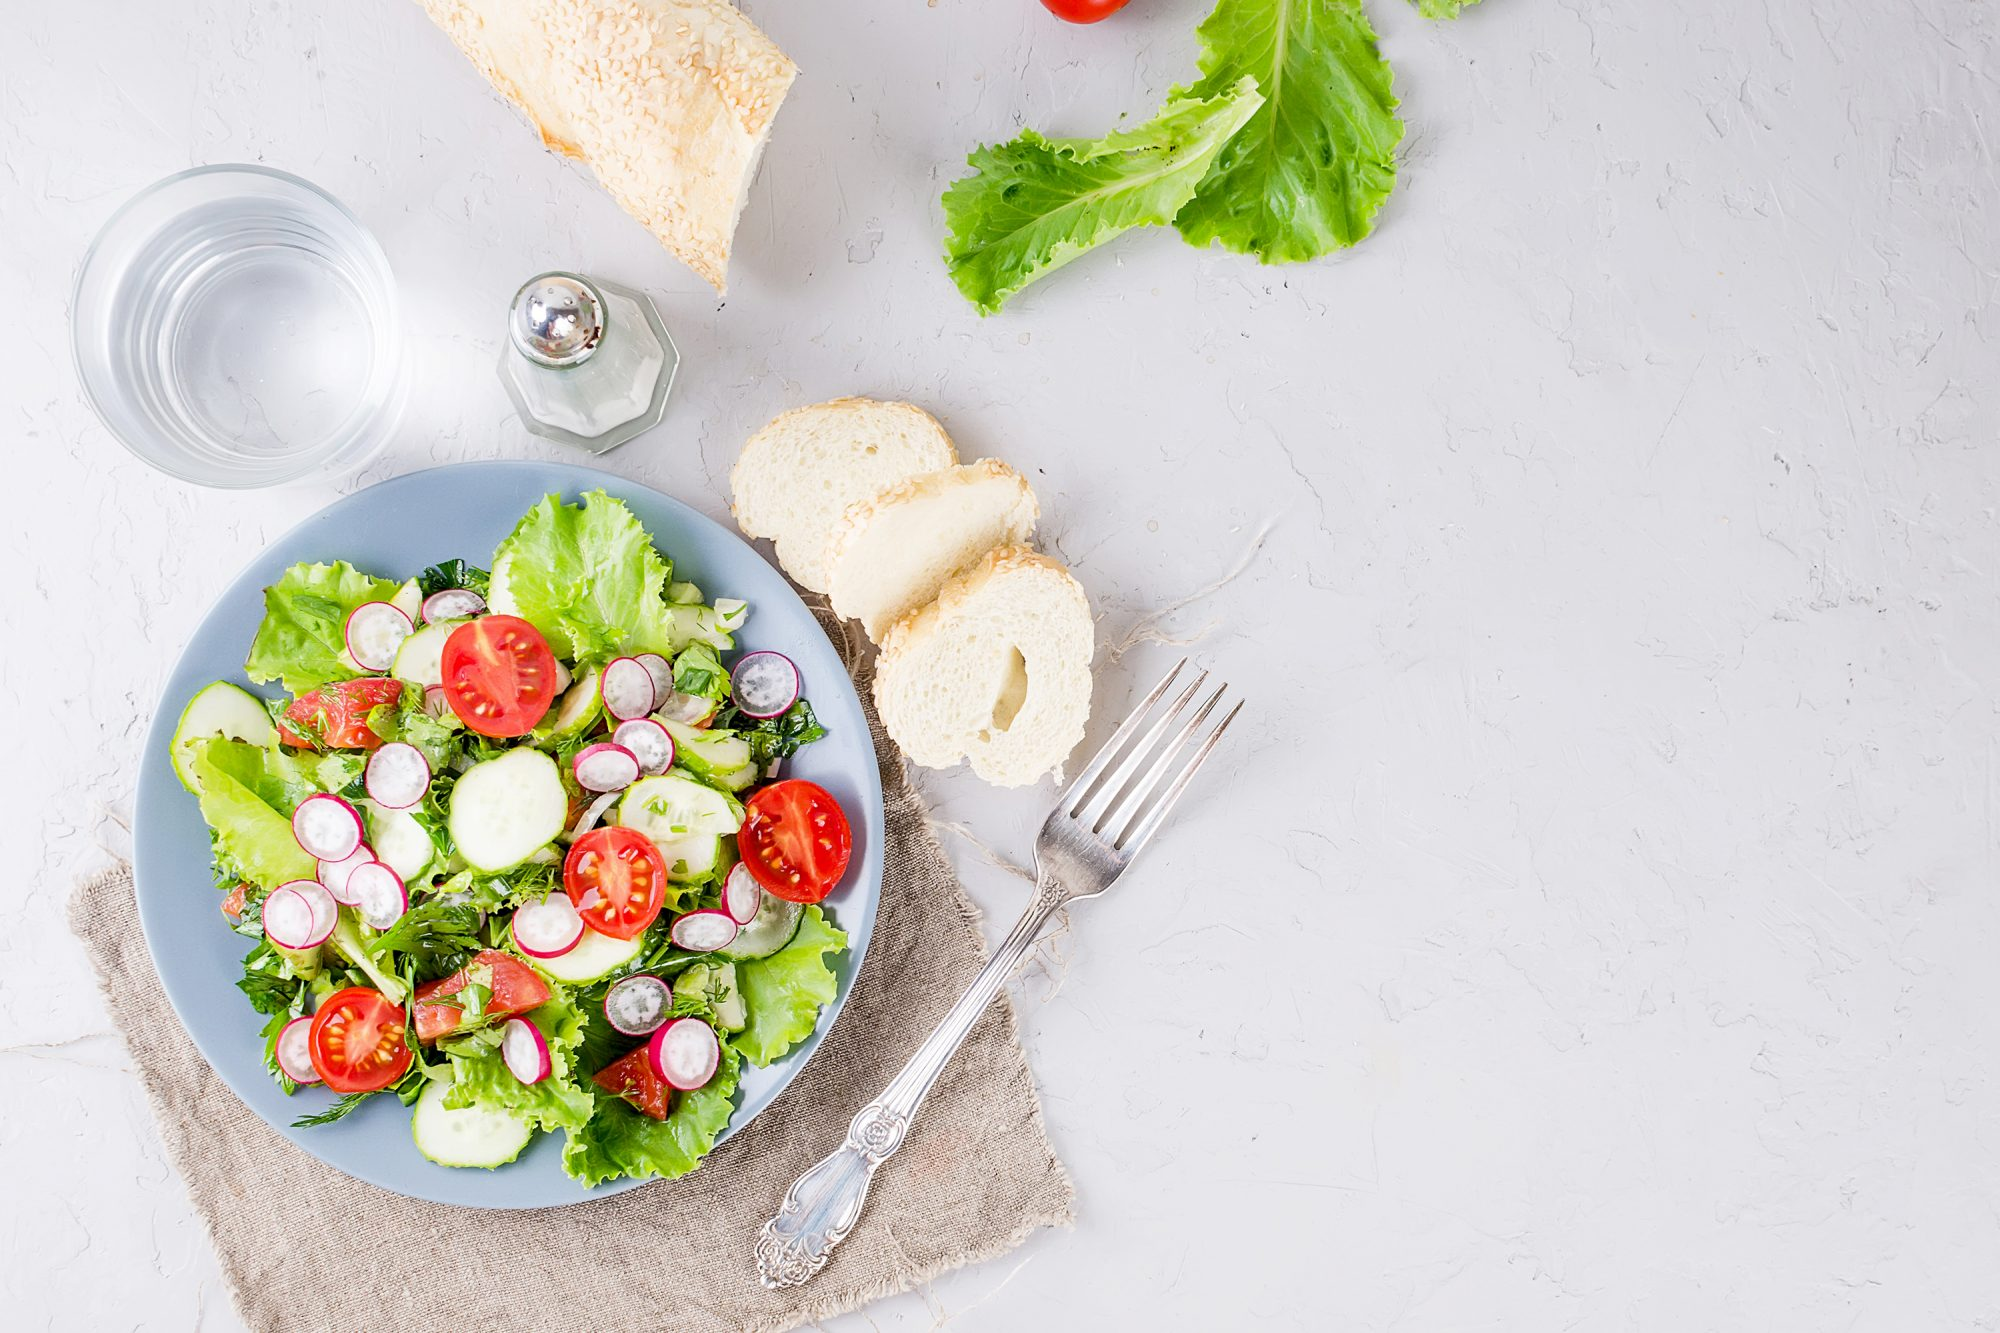 Lunch salad on a plate with bread